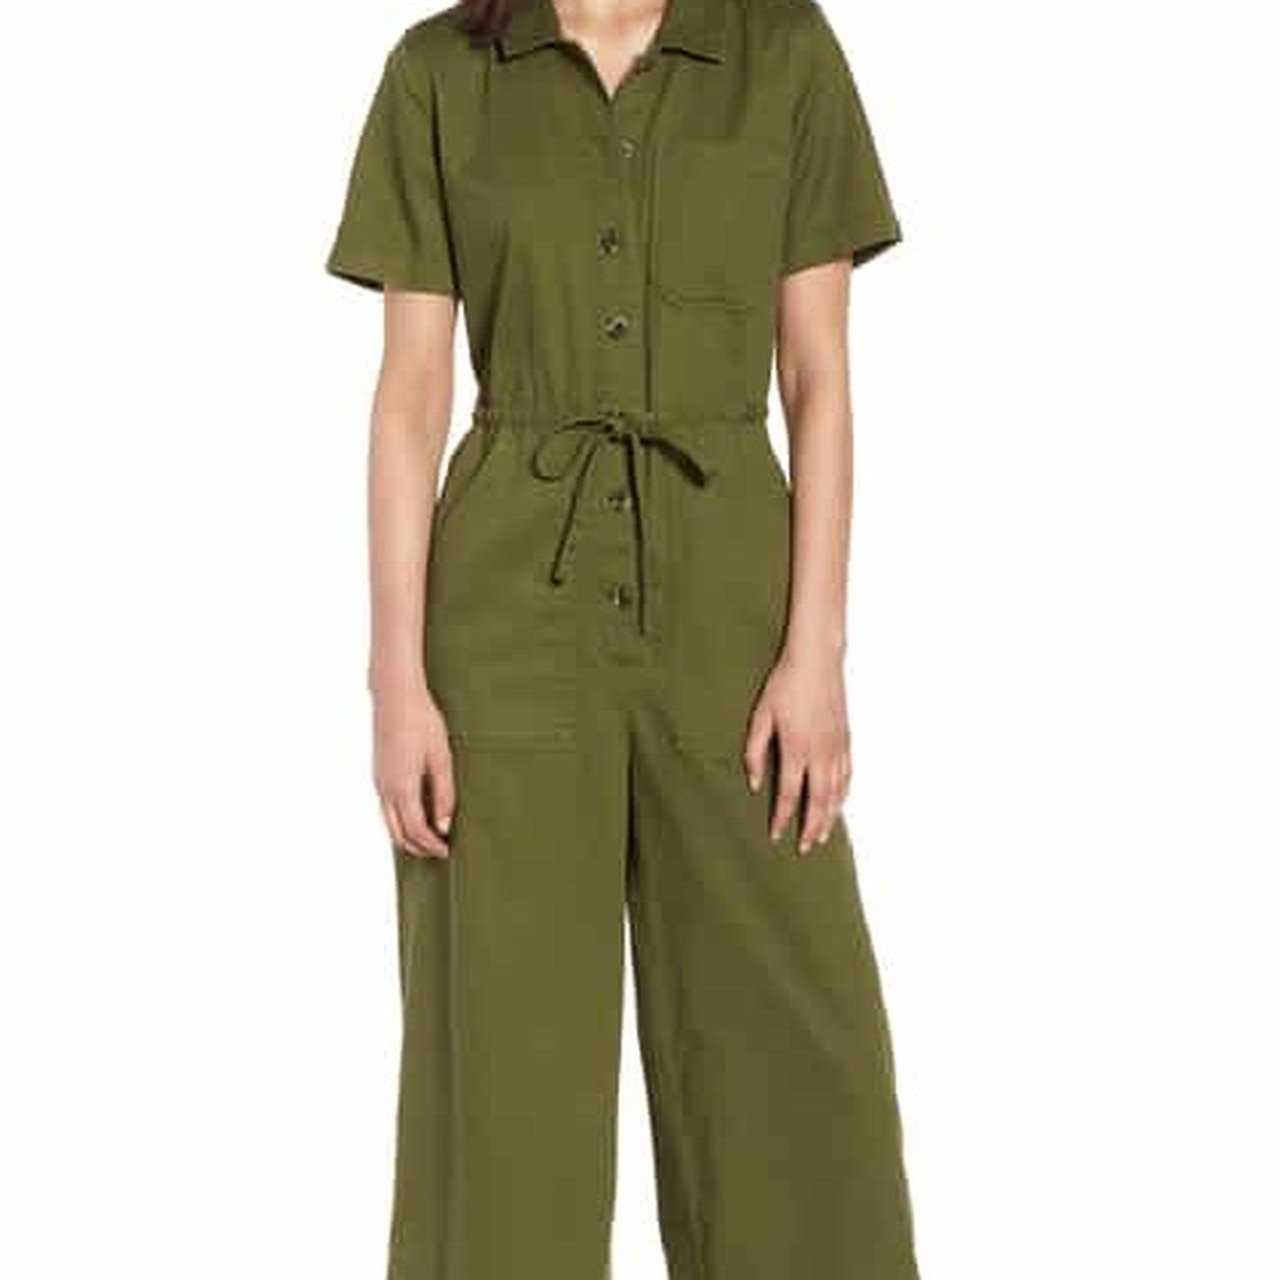 bc541341233 Super cute Wide Leg Utility Jumpsuit from Madewell Size  and - Depop